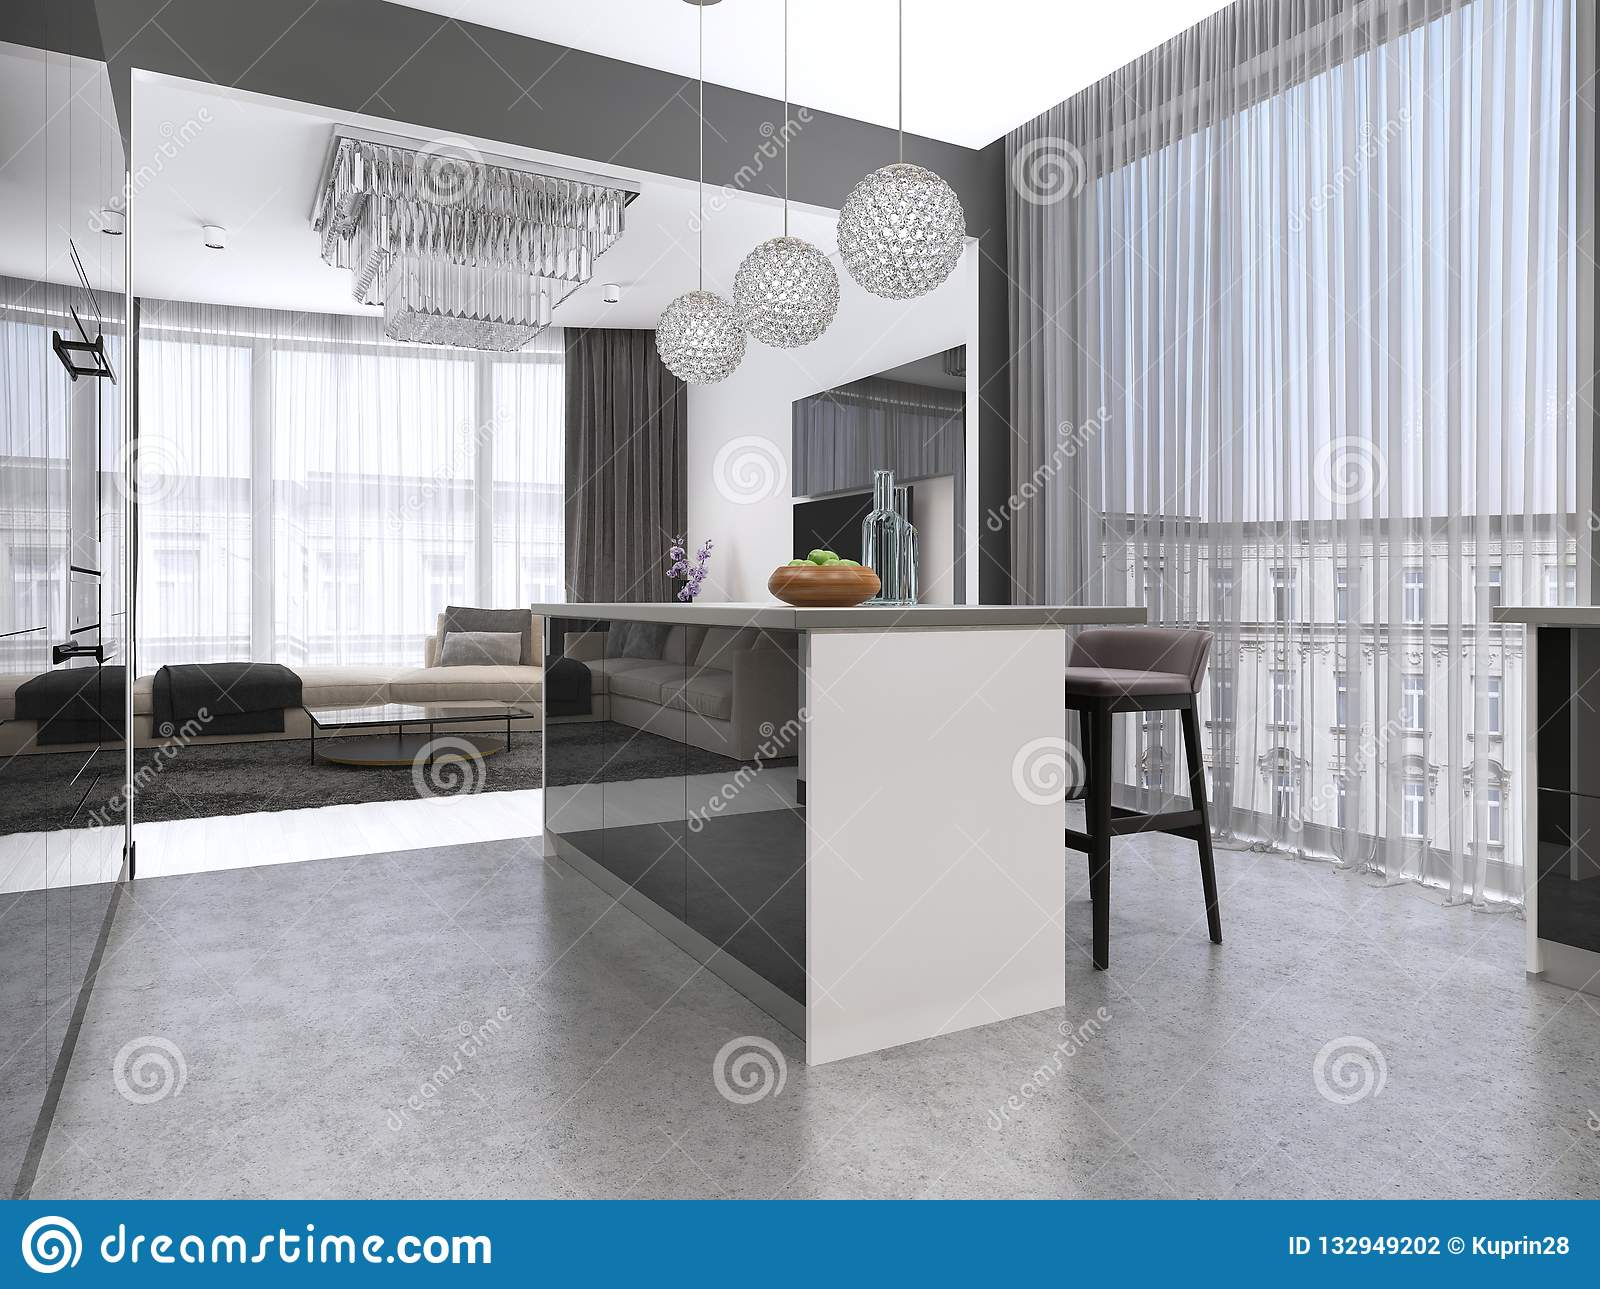 Sensational Kitchen Island With Three Bar Stools And Round Glass Gamerscity Chair Design For Home Gamerscityorg